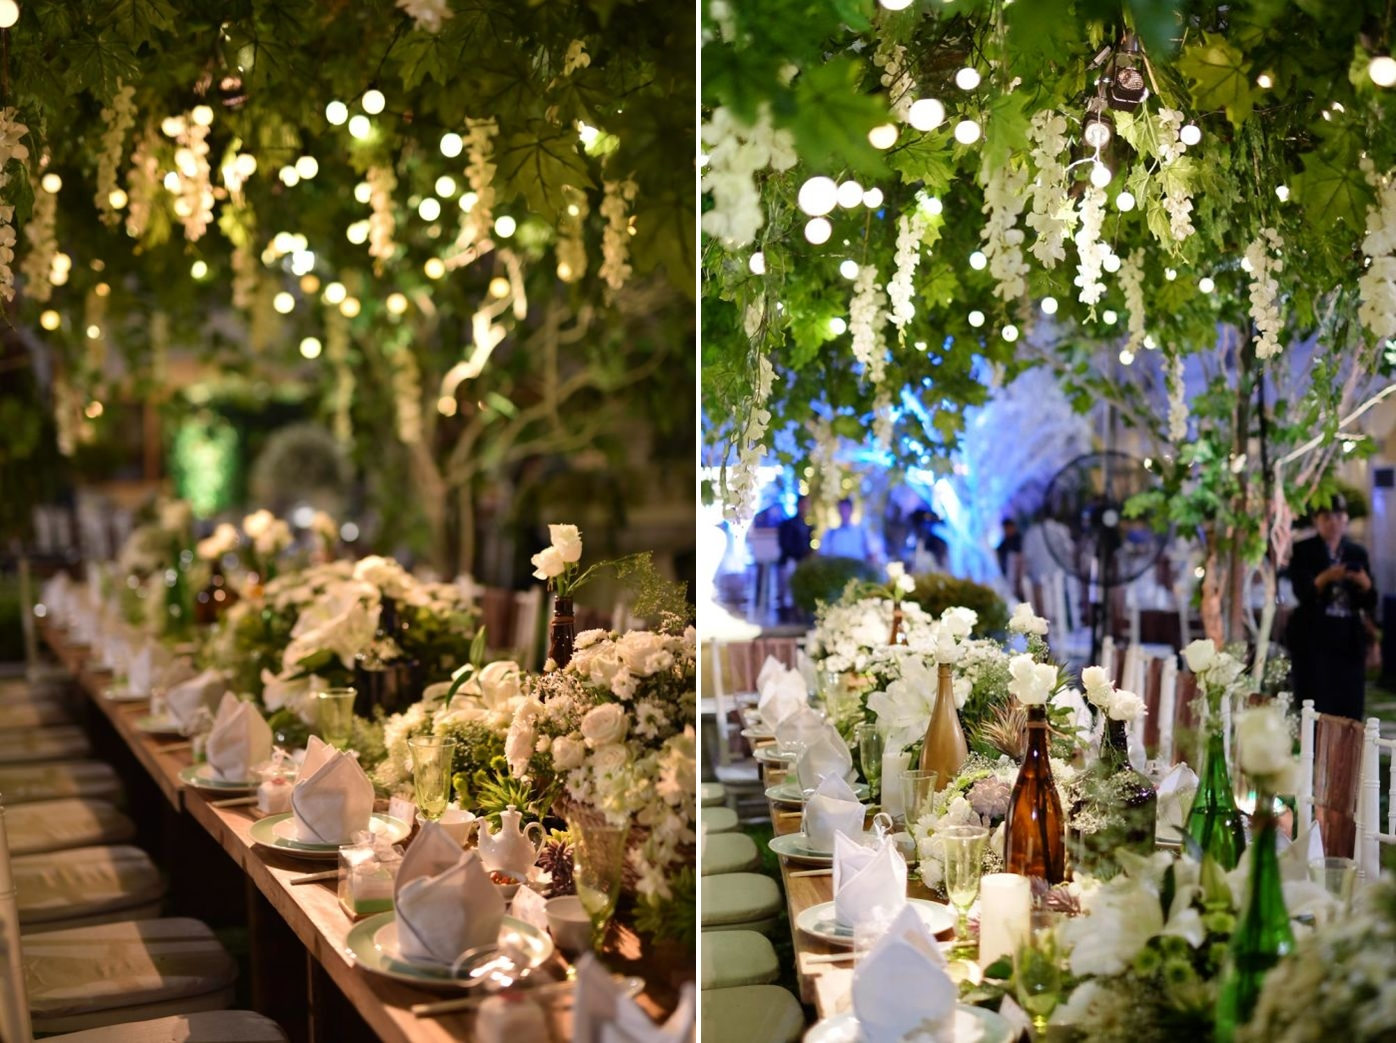 Favorite wedding theme for reception looks steves decor capturing the charming ambiance of a classic garden wedding venue is a fun thing to do the decorative cues are all there fragrant flowering plants junglespirit Images